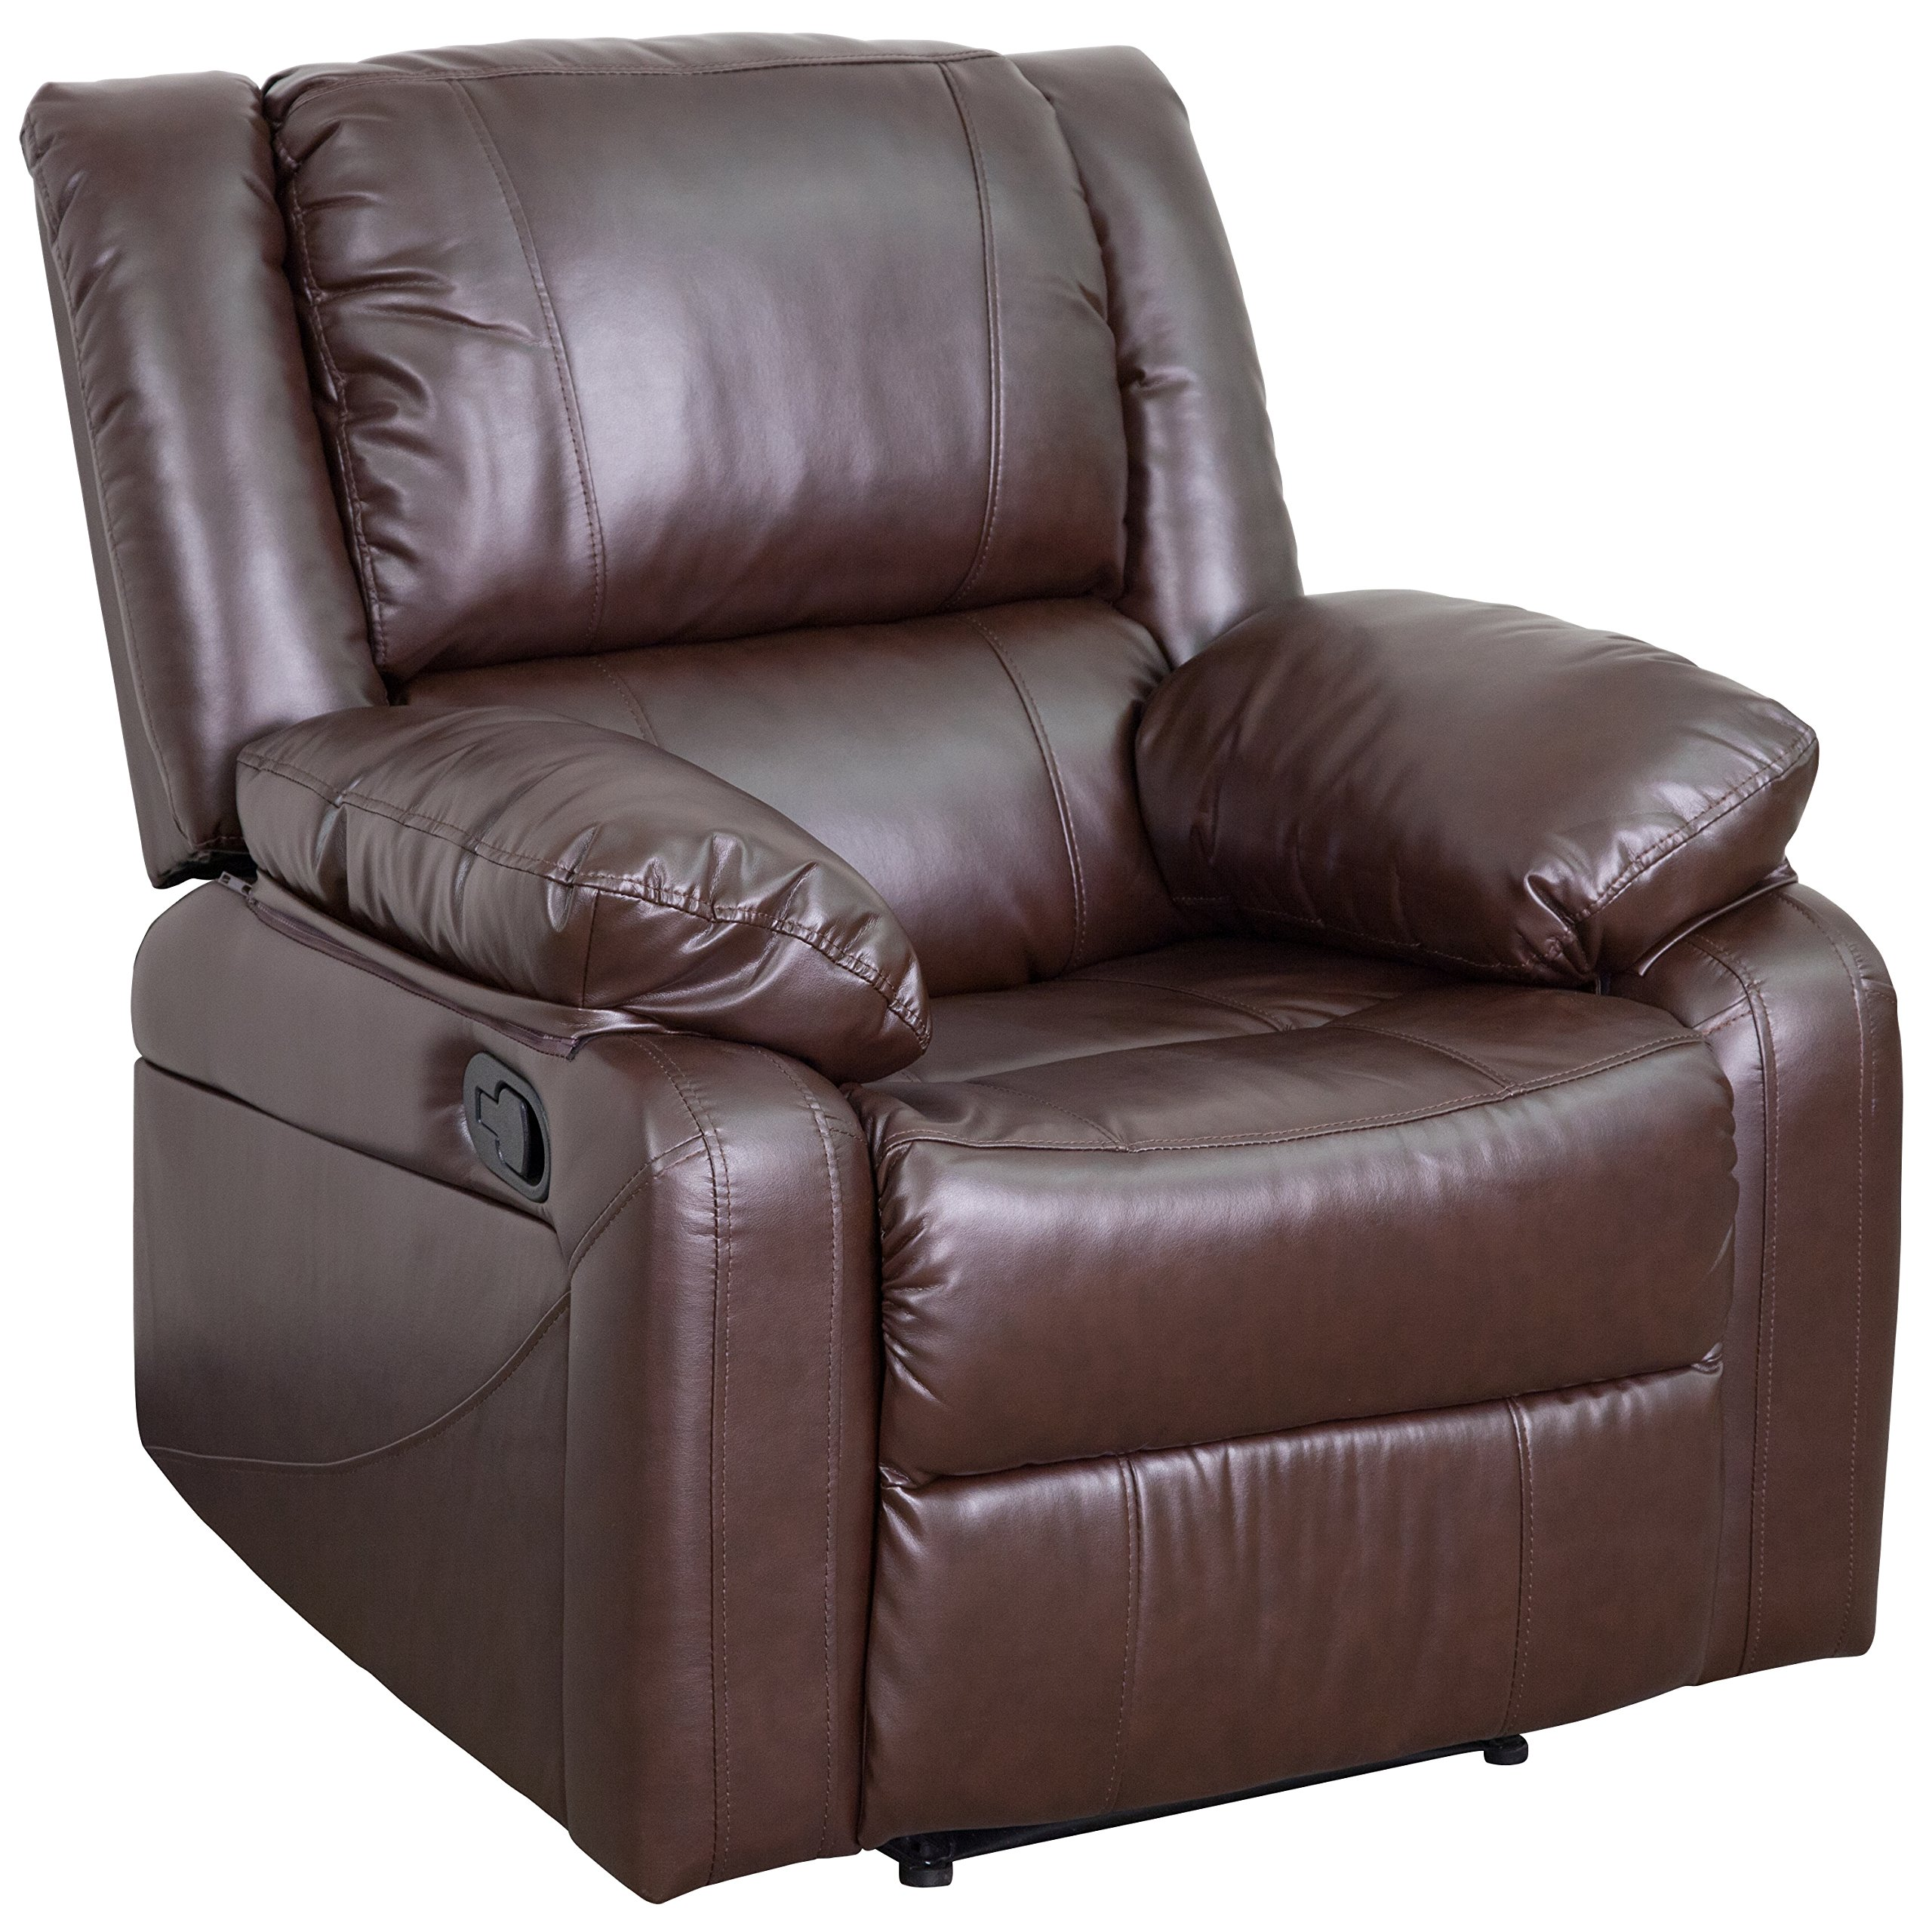 Flash Furniture Harmony Series Brown Leather Recliner by Flash Furniture